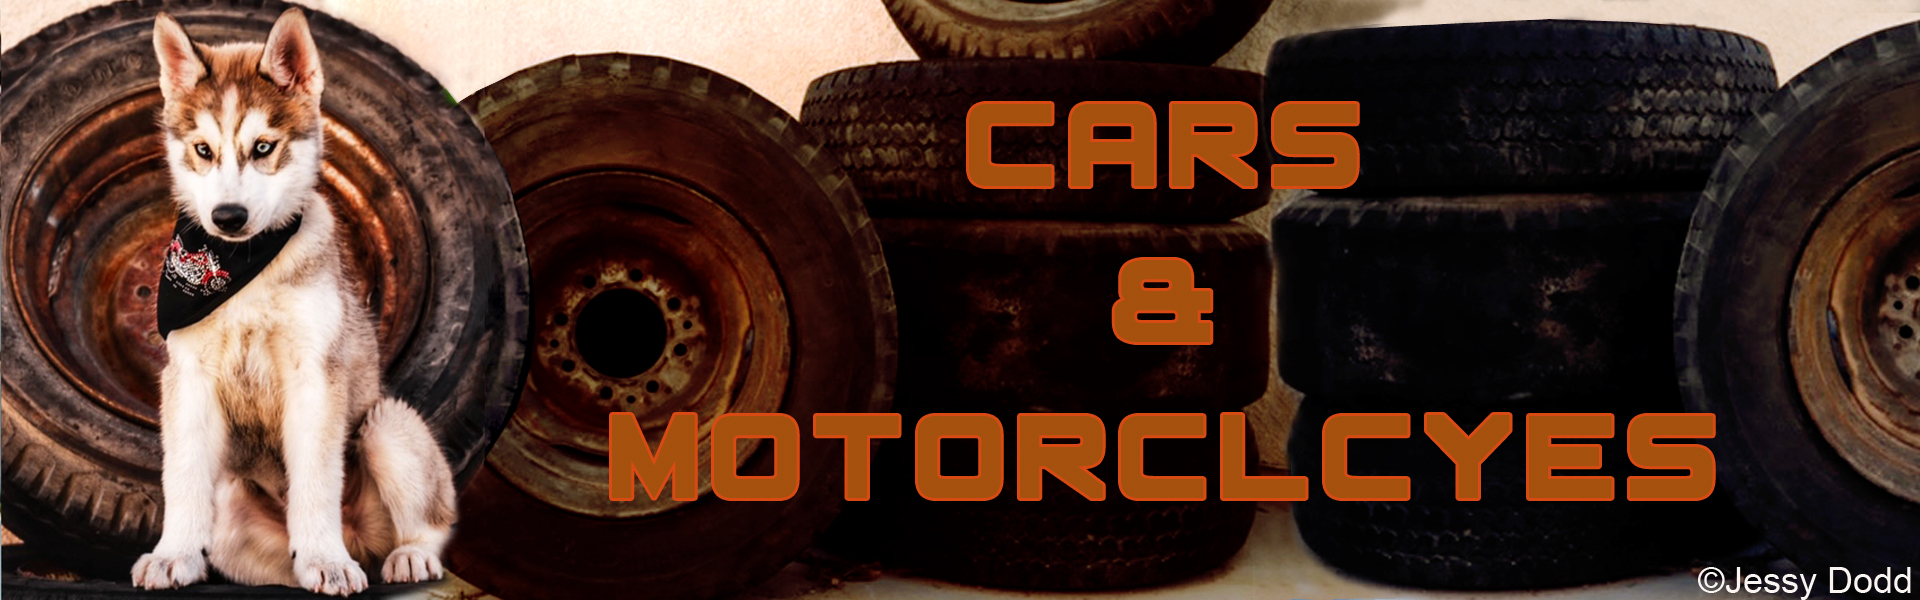 cars-and-motorcycles-copy.jpg